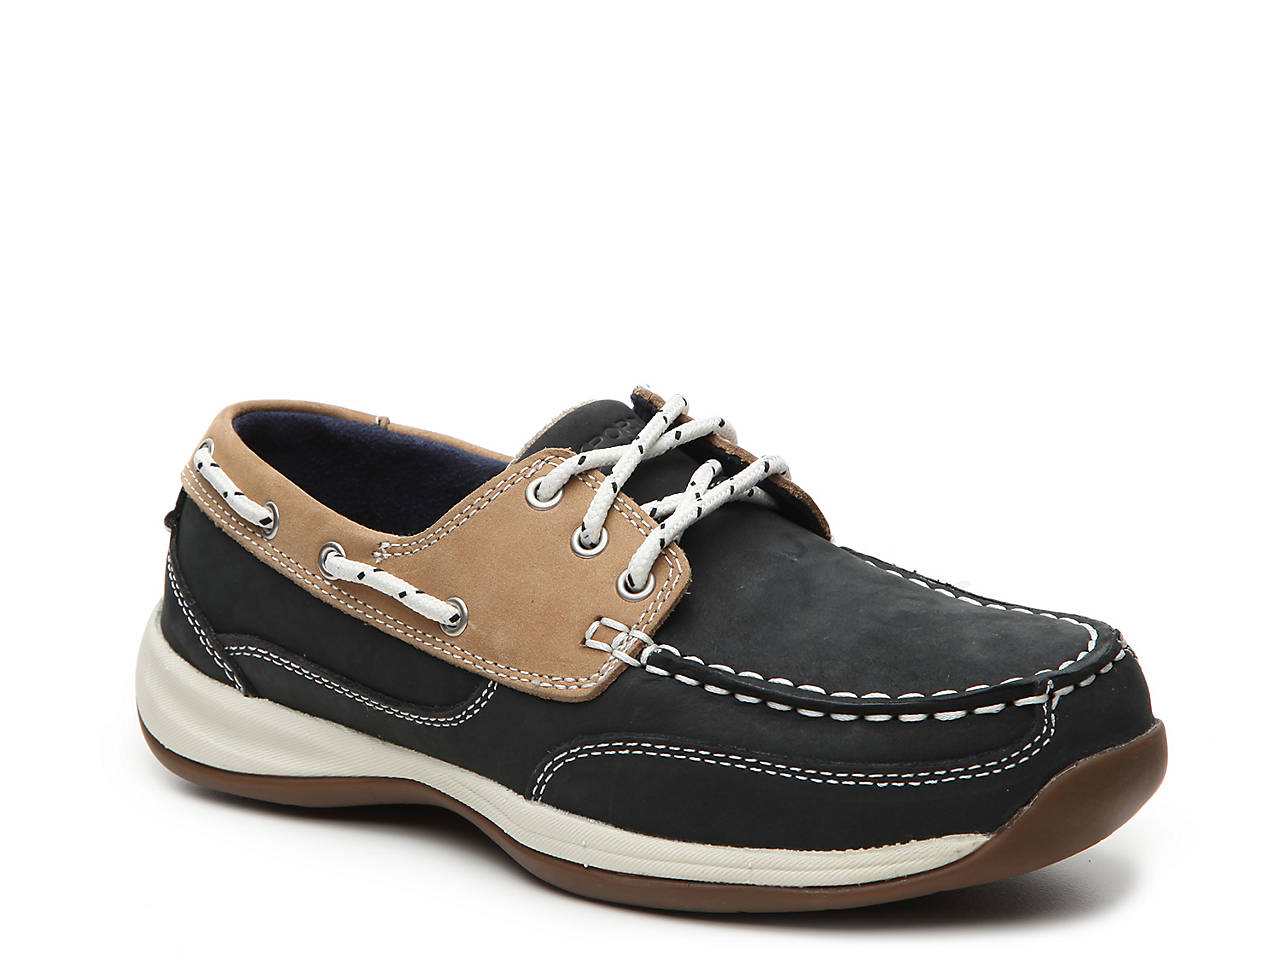 rockport shoes 2018 fall trends for kids 957300